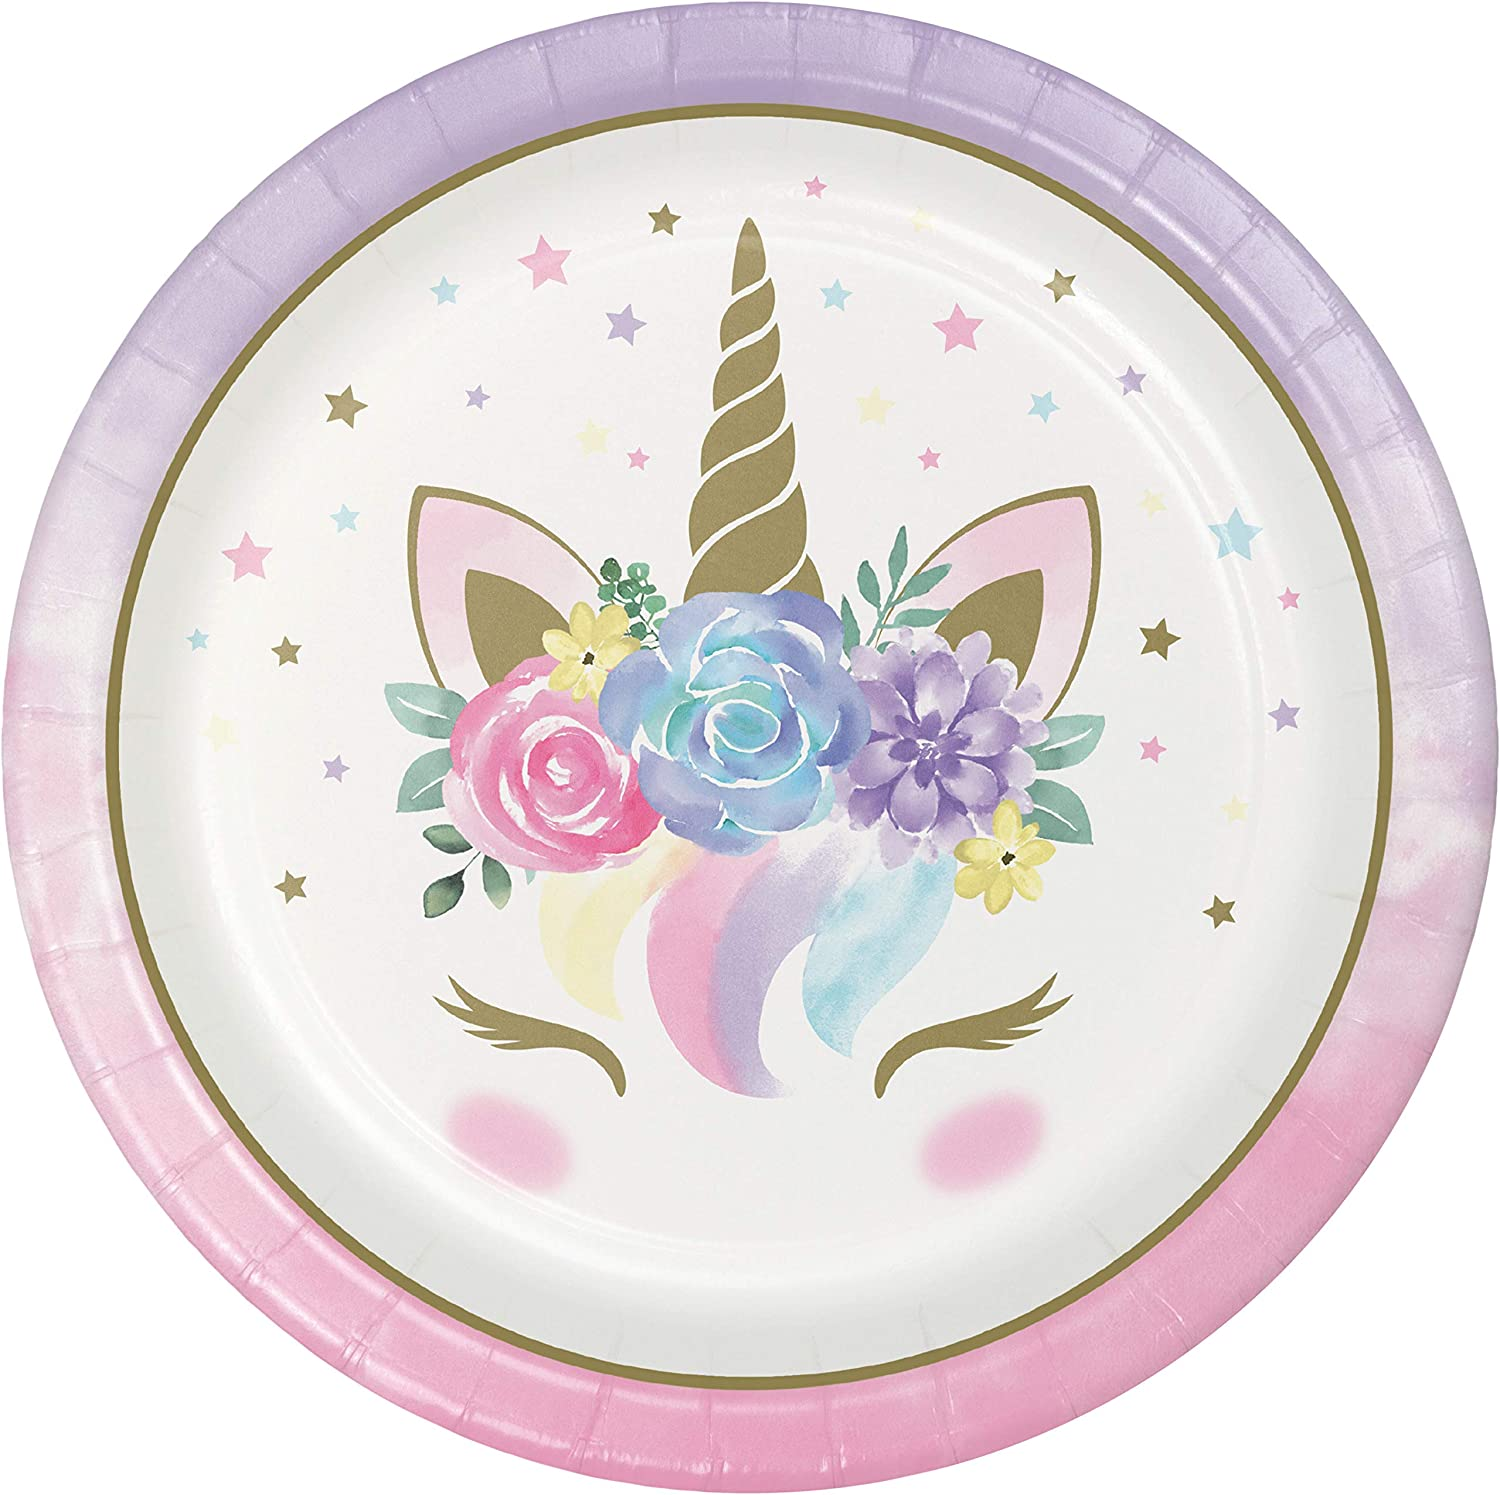 Magical Illusion Plates /& Napkins Party Kit for 24 Lunch